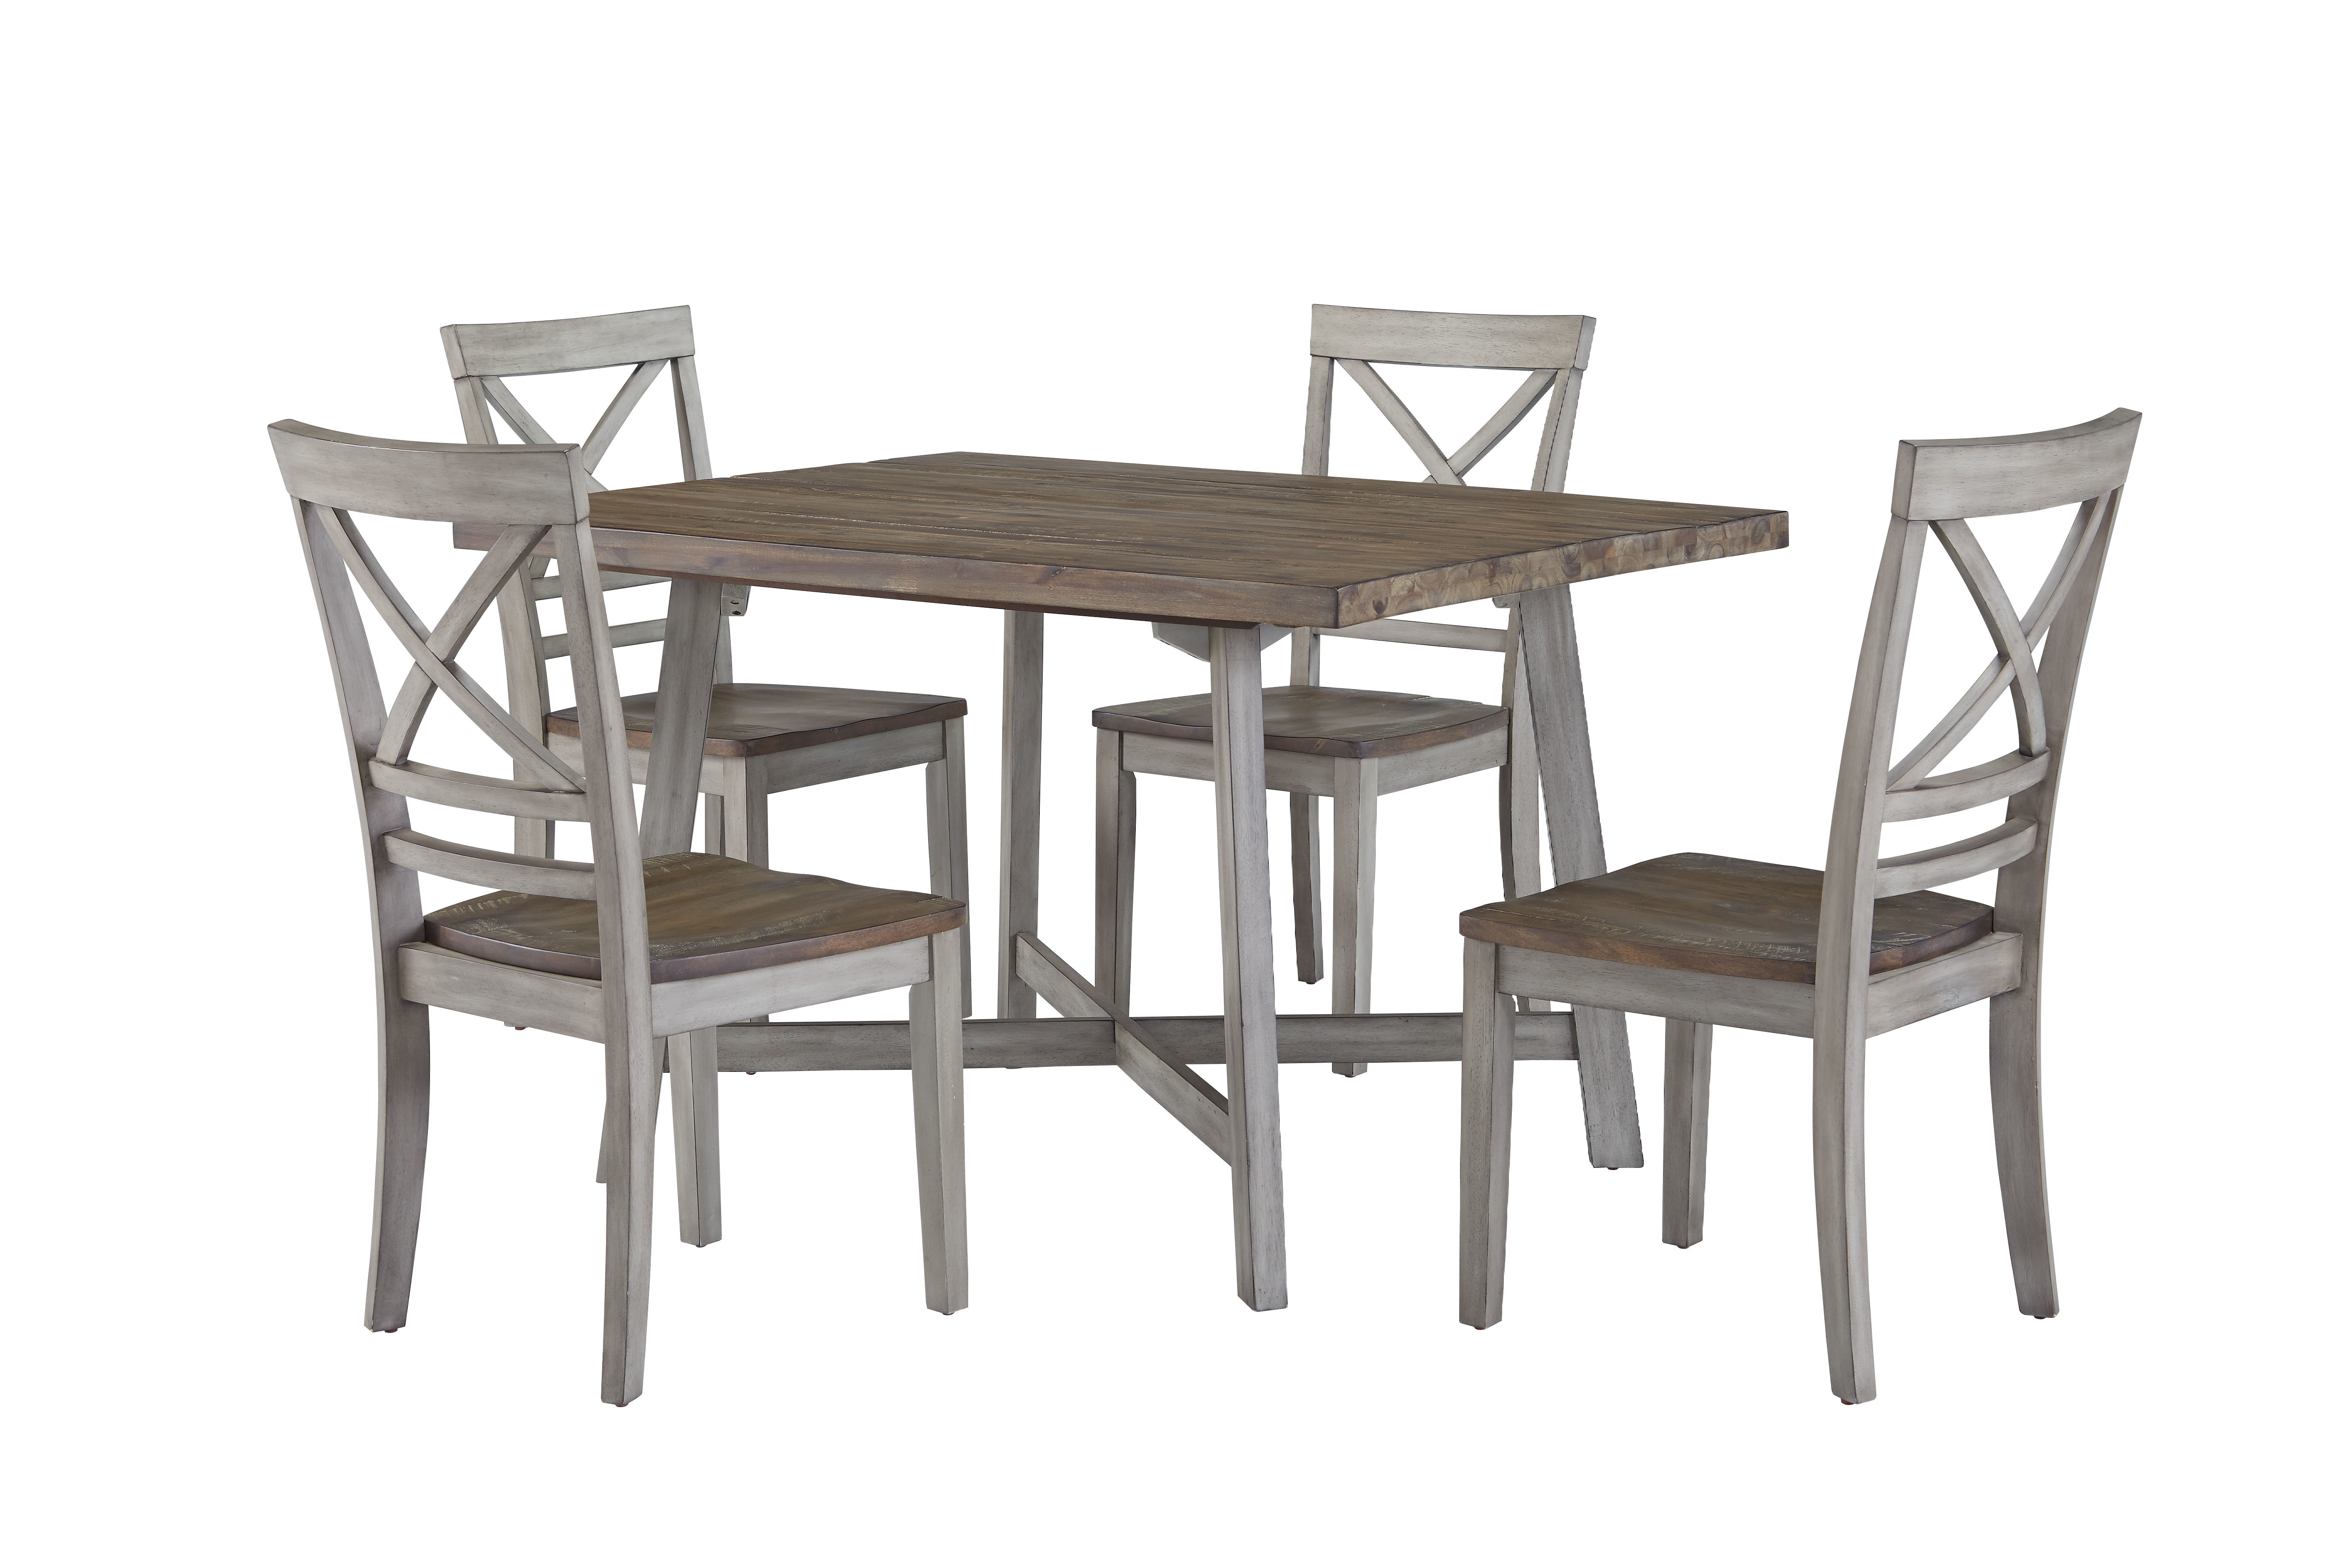 Joss & Main Pertaining To Wiggs 5 Piece Dining Sets (View 25 of 25)